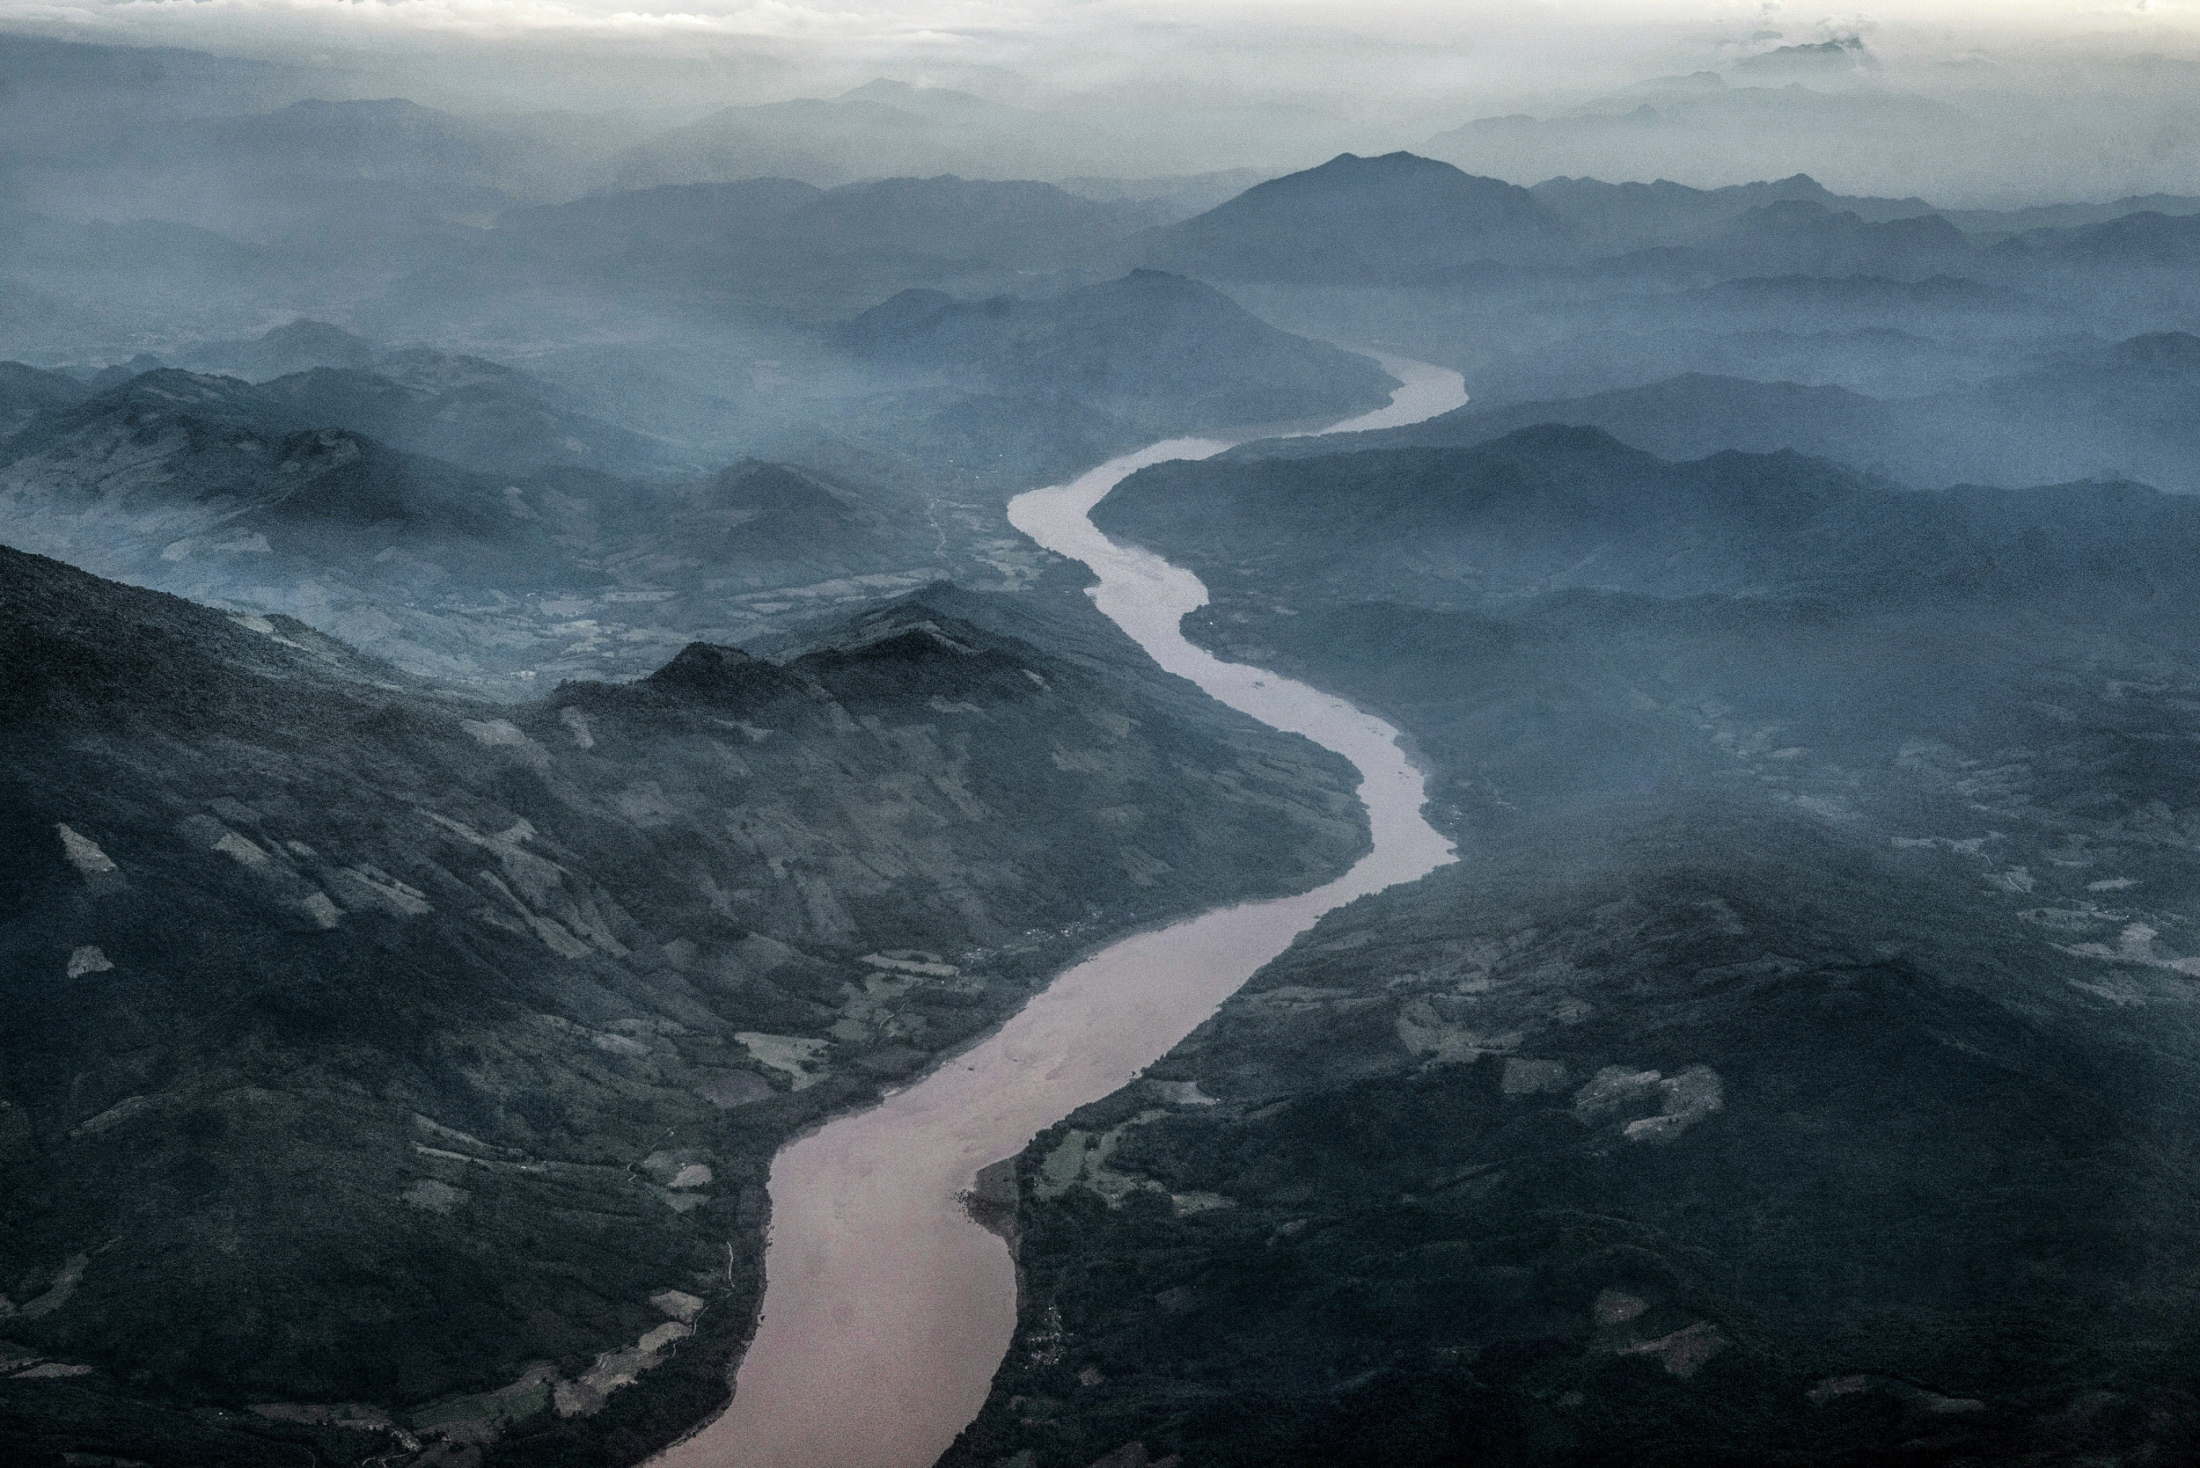 The Mekong River, the 12th longest river in the world is under threat by a total of 11 large hydropower dams planned to be built by the governments of Laos, Thailand, Vietnam and Cambodia, while China has already completed five dams on the upper reaches of the Mekong while the other three are under construction. It is believed that these hydropower dams are likely to cause integrated environmental impacts and more than 60 million people in the Lower Mekong will have to face threats related to Climate Change.